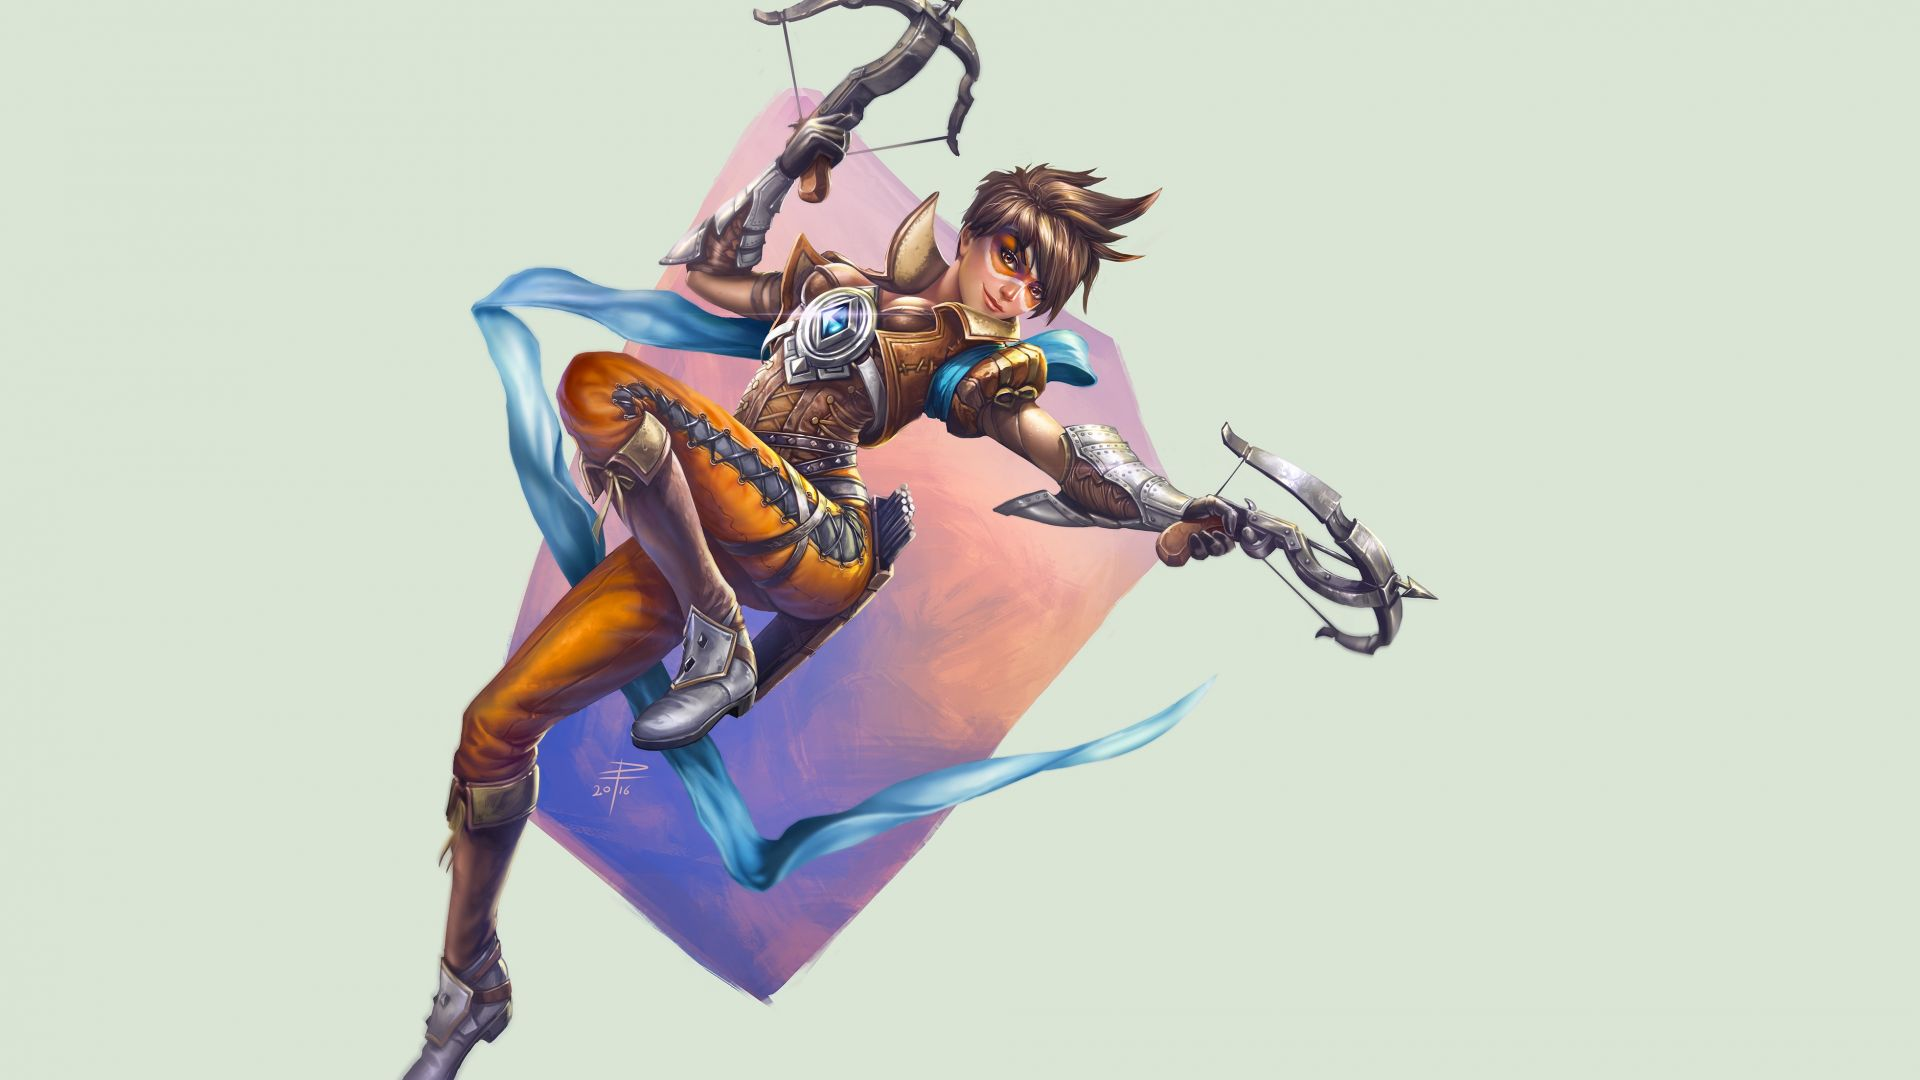 Tracer, 4K, Overwatch (horizontal)